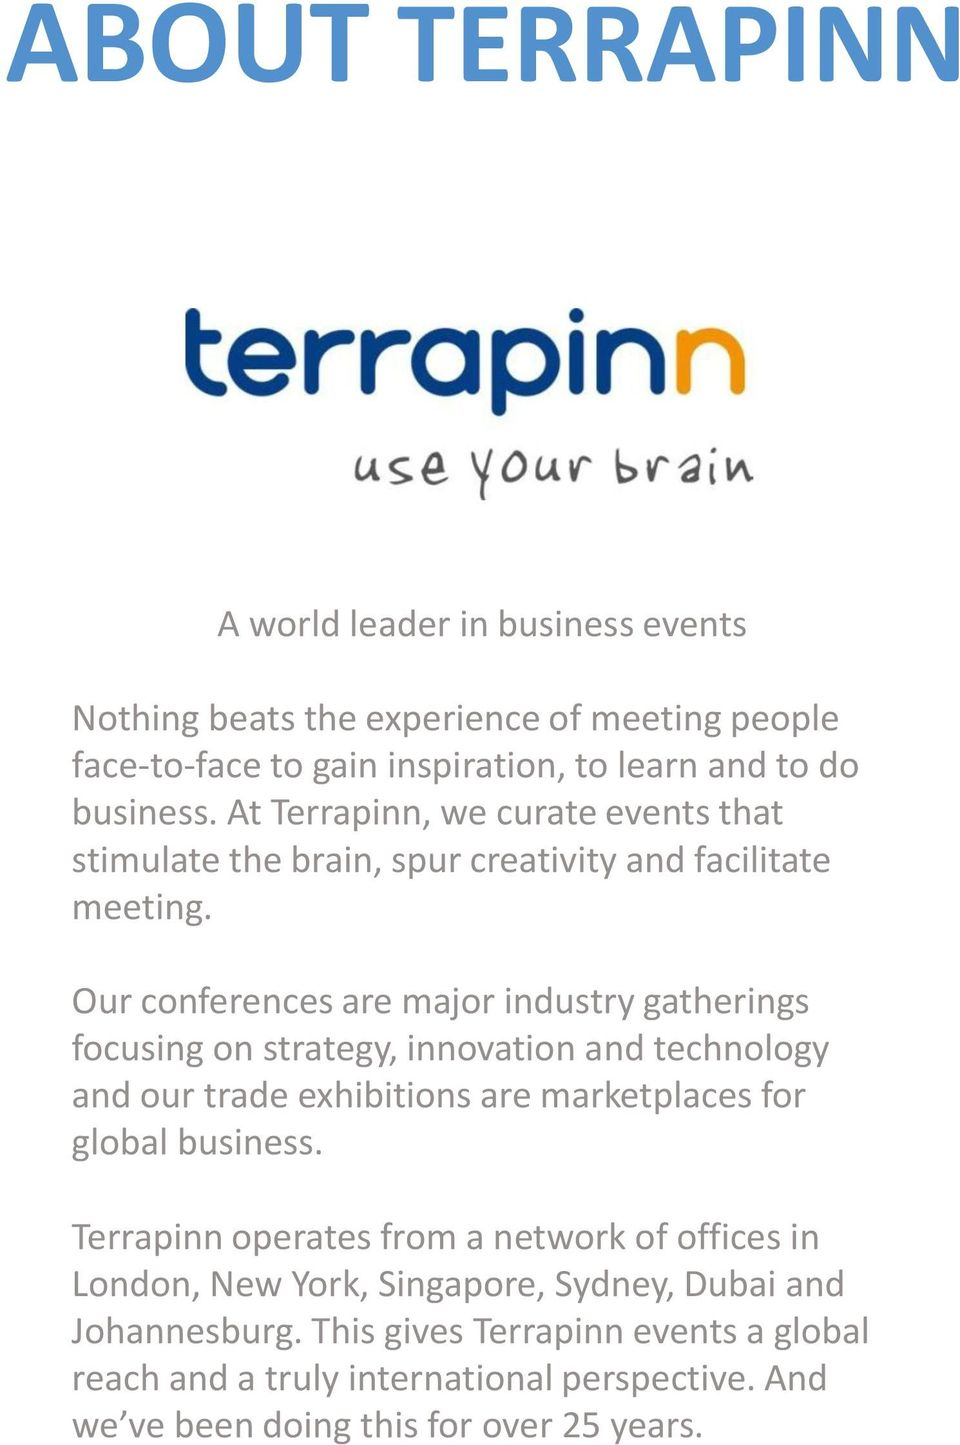 Our conferences are major industry gatherings focusing on strategy, innovation and technology and our trade exhibitions are marketplaces for global business.